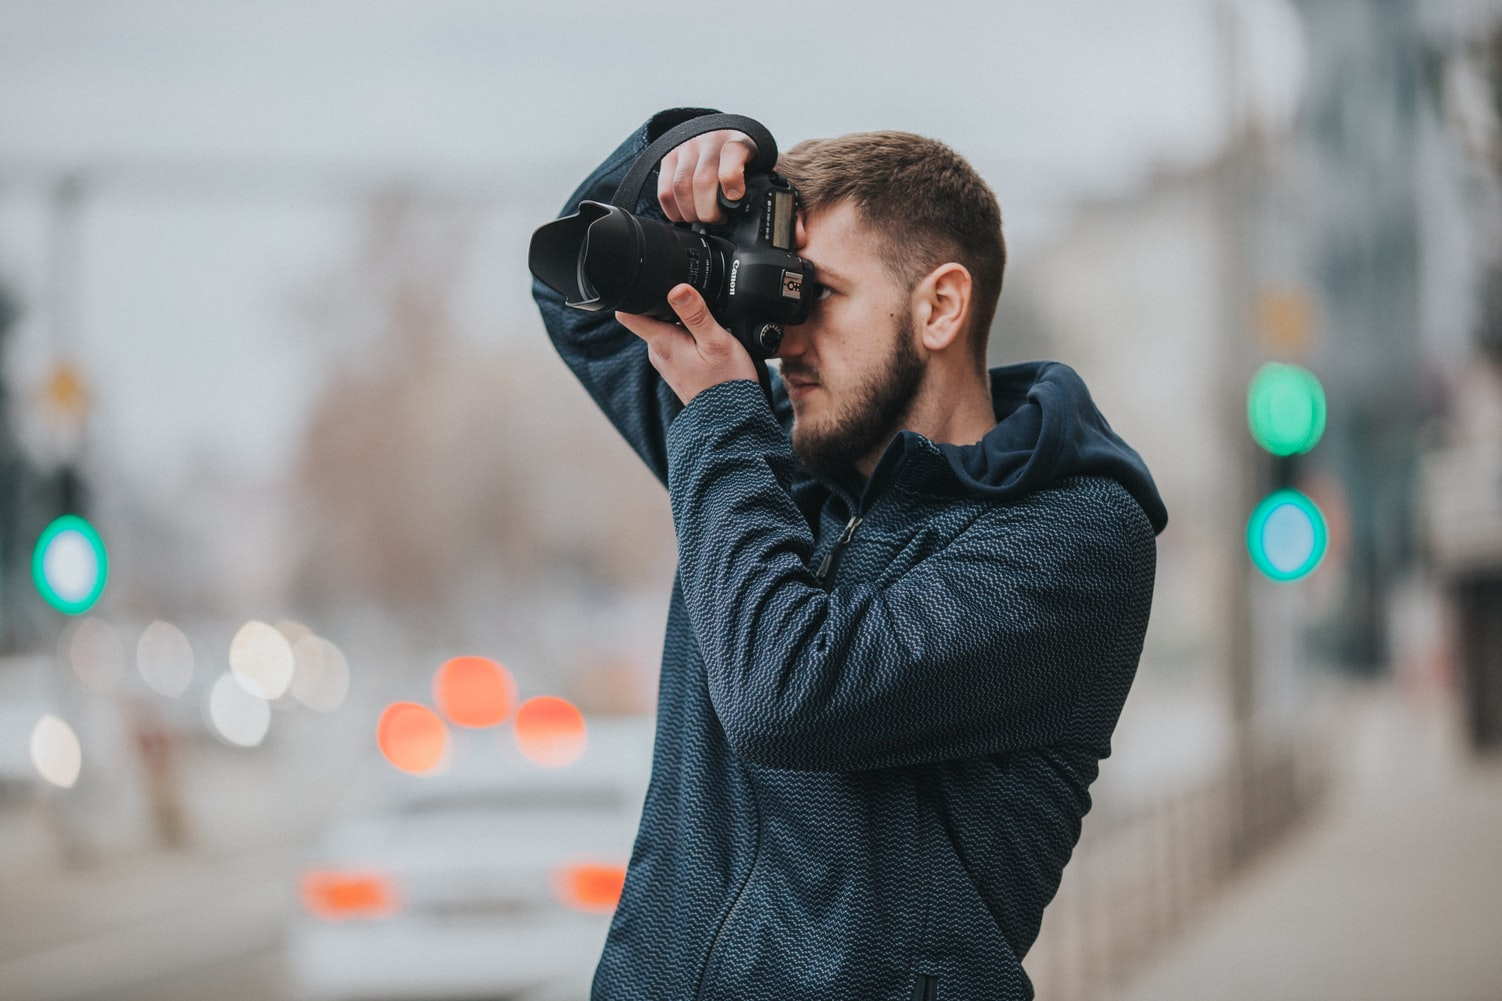 Man using a black dlsr camera